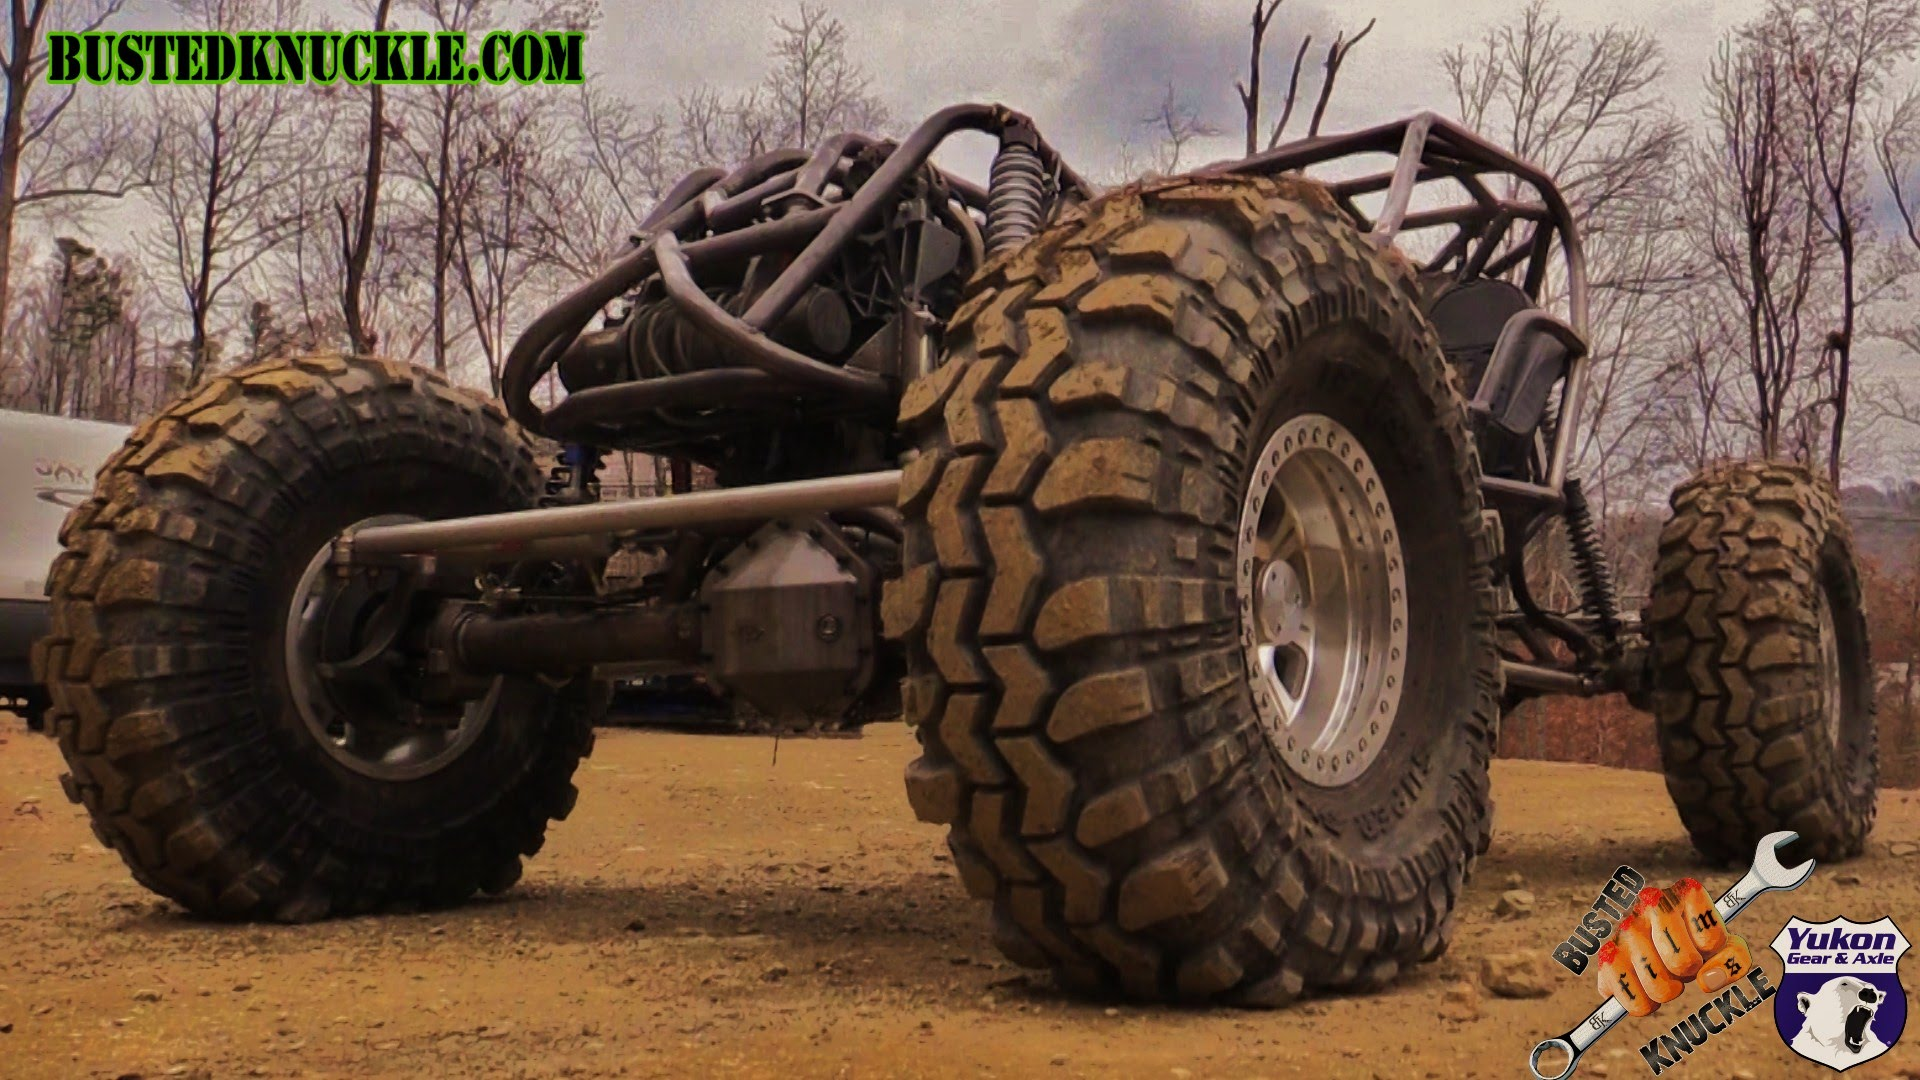 Busted Knuckle Buggy Rock Bouncer Build Busted Knuckle s